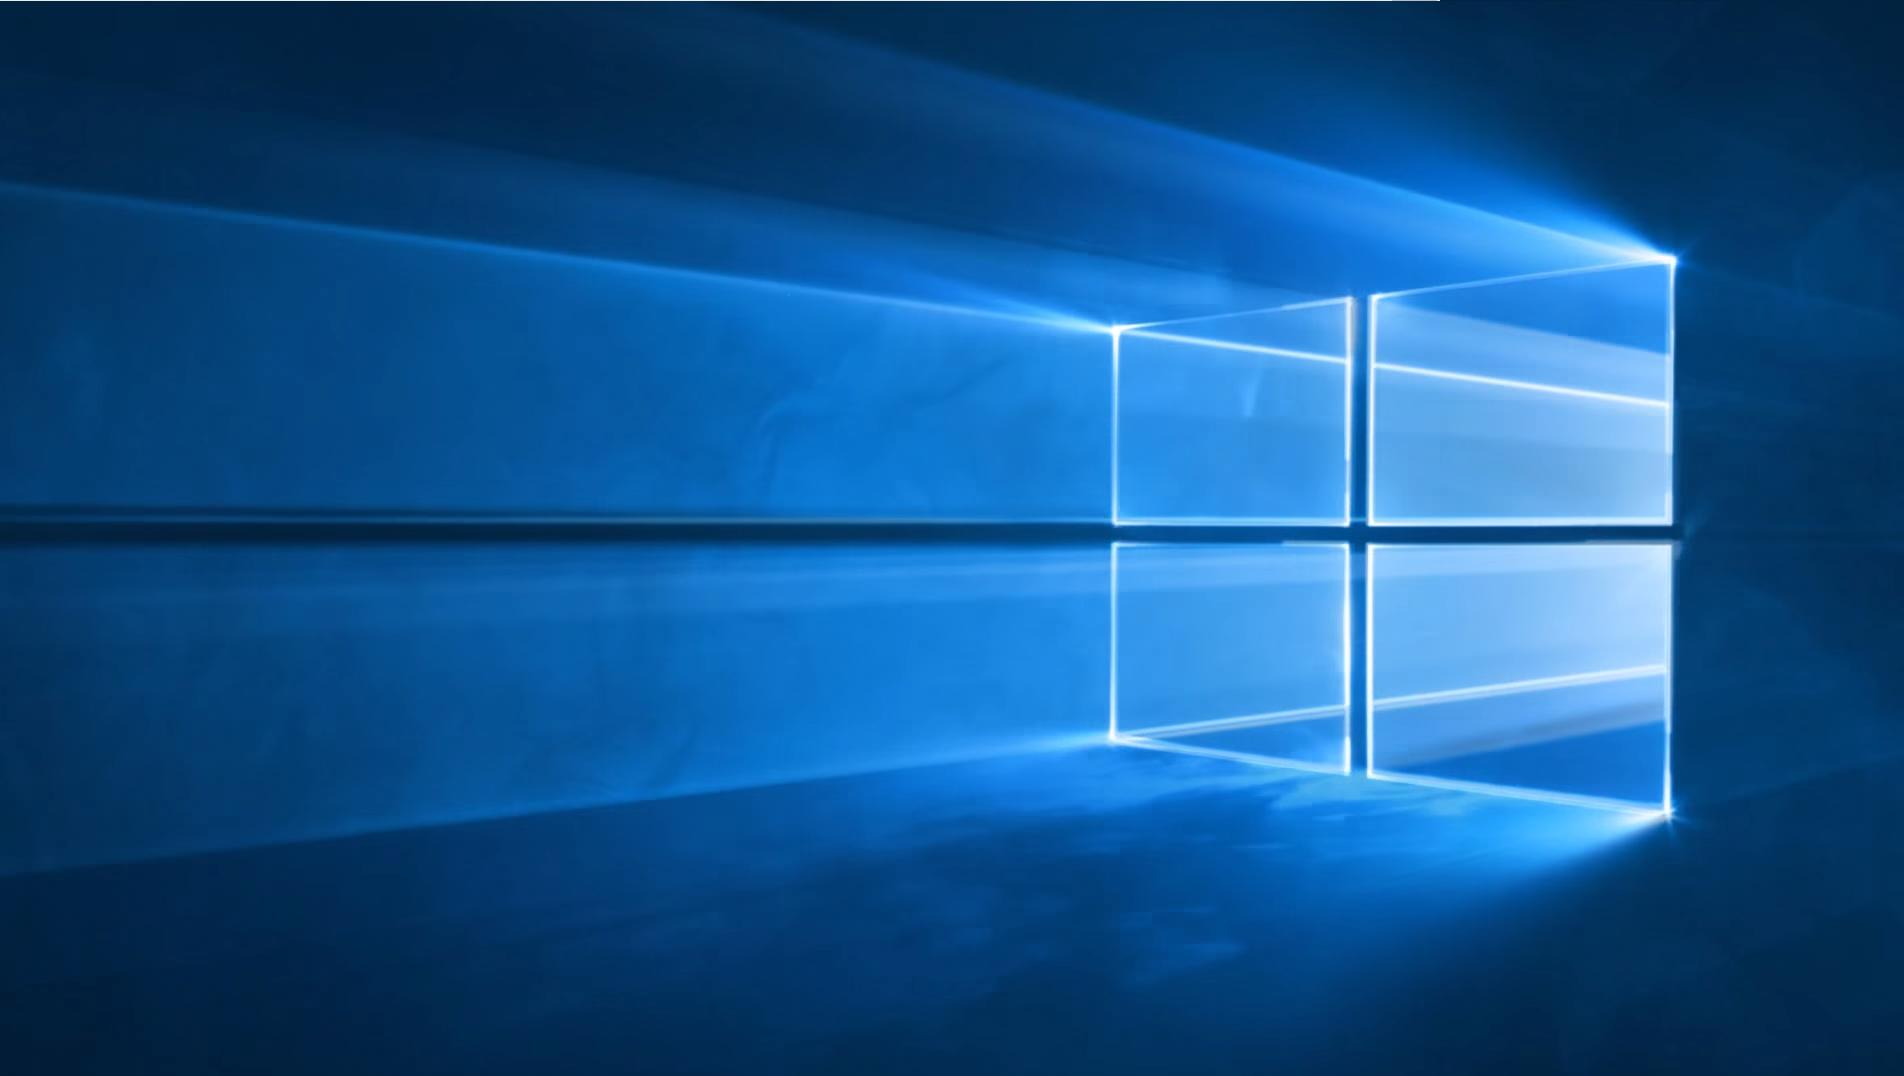 Windows 10 Default Wallpaper NON HD   Windows 10   OSBetaArchive 1904x1076